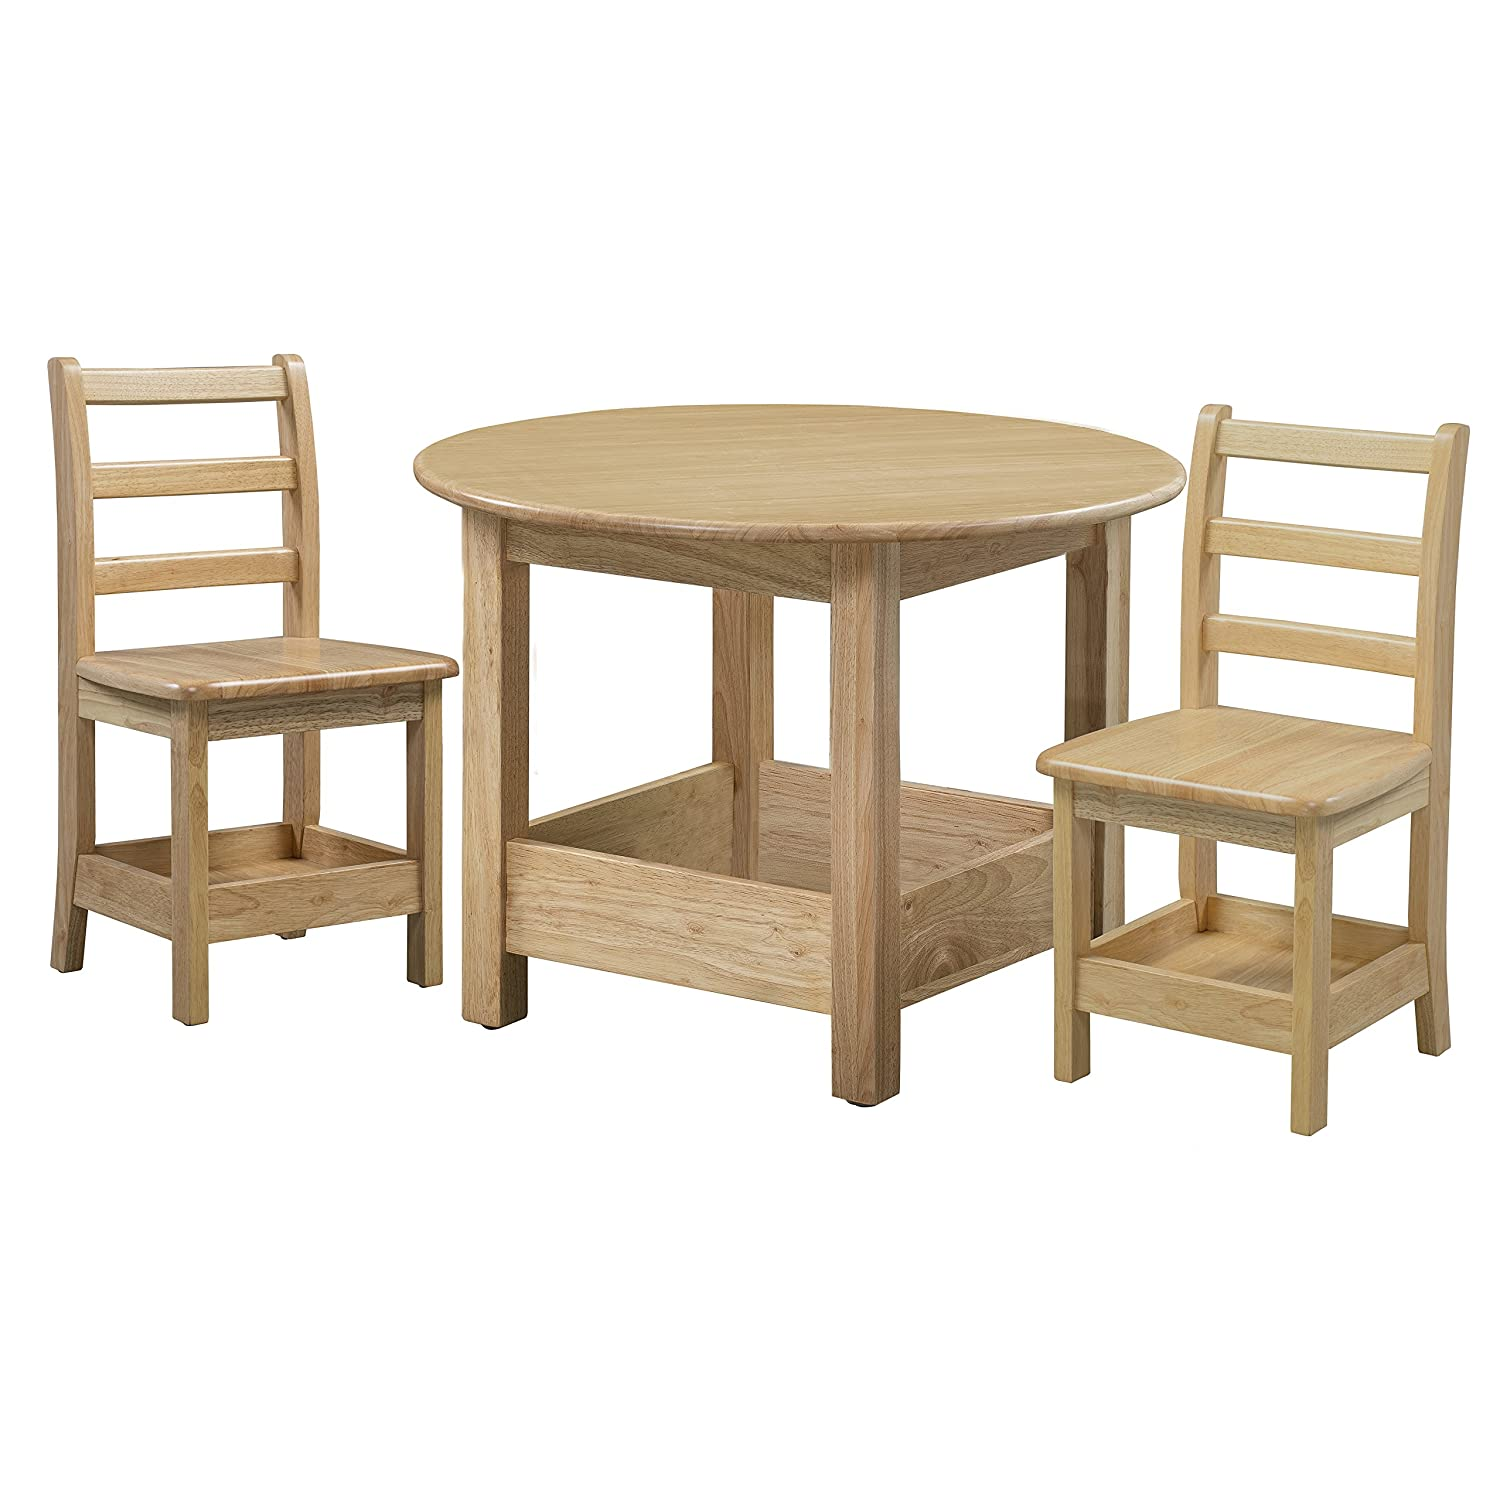 Amazon Com Ecr4kids Sit N Stash Solid Hardwood 32 Round Table And